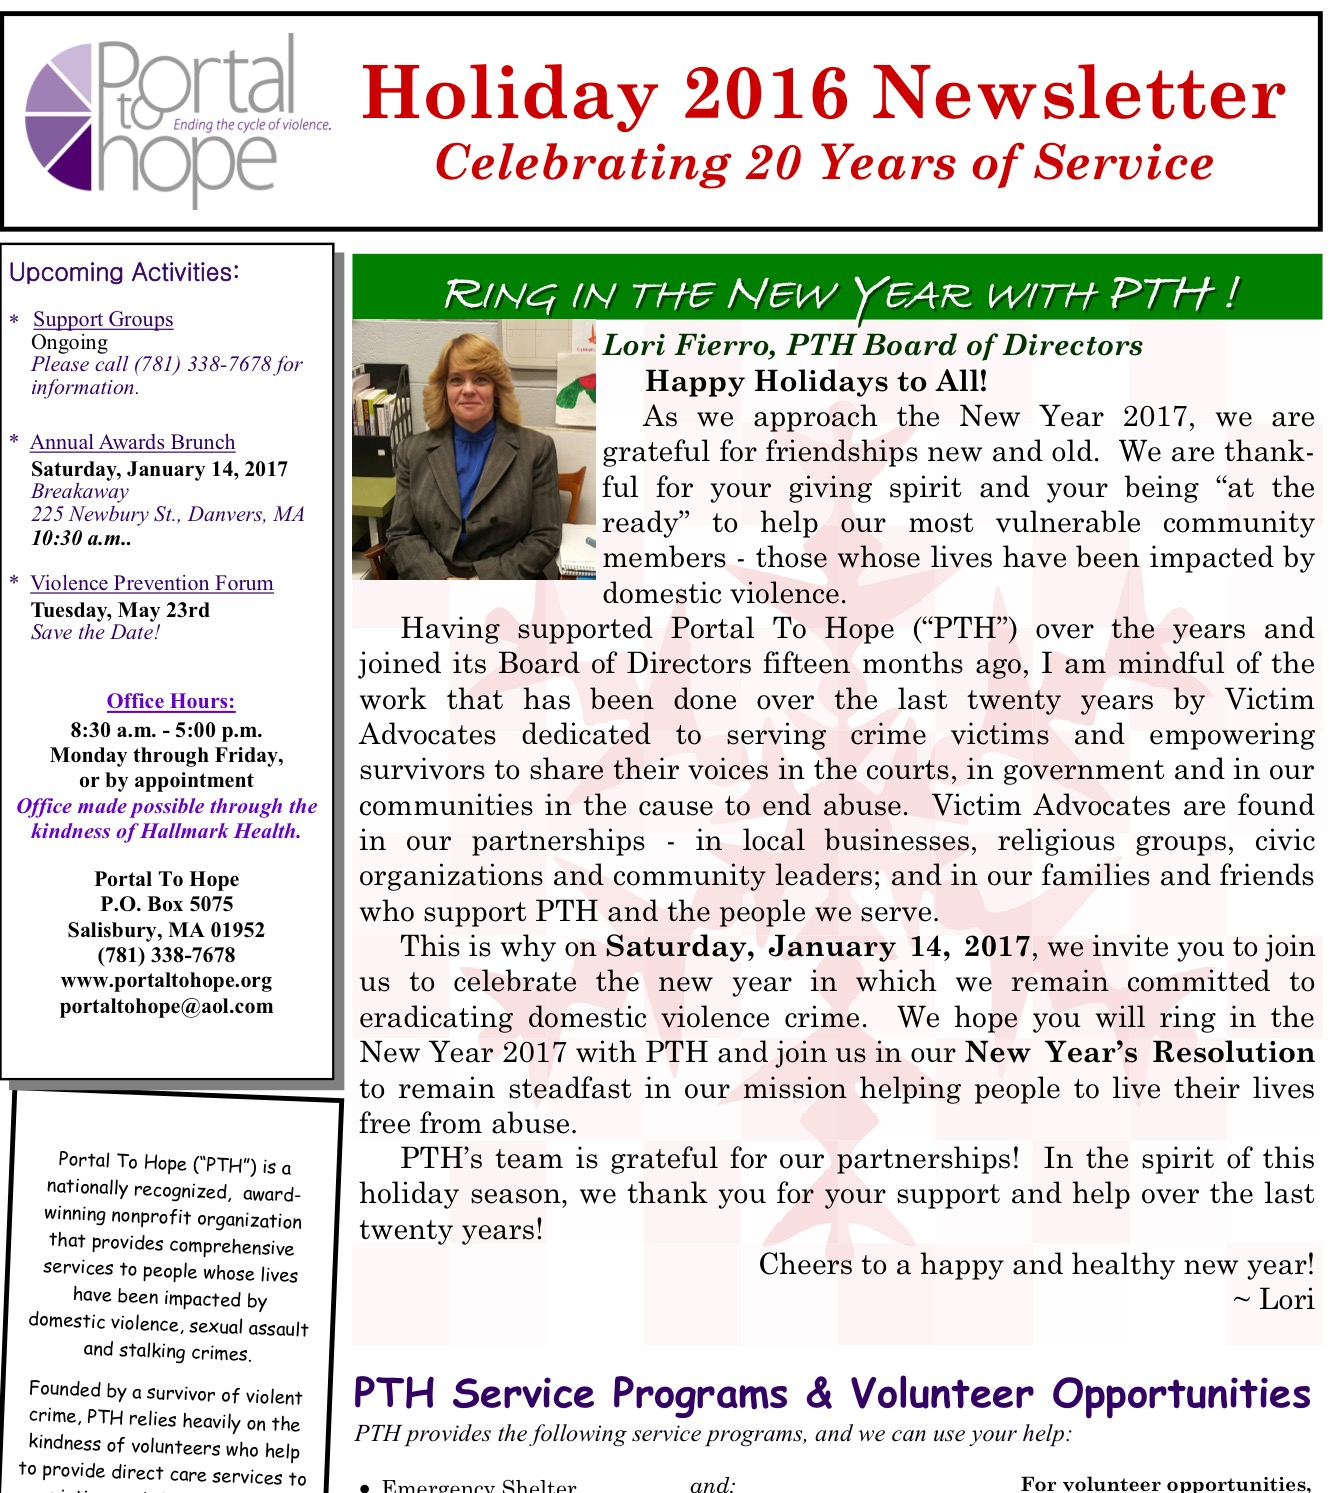 Holiday 2016 Newsletter